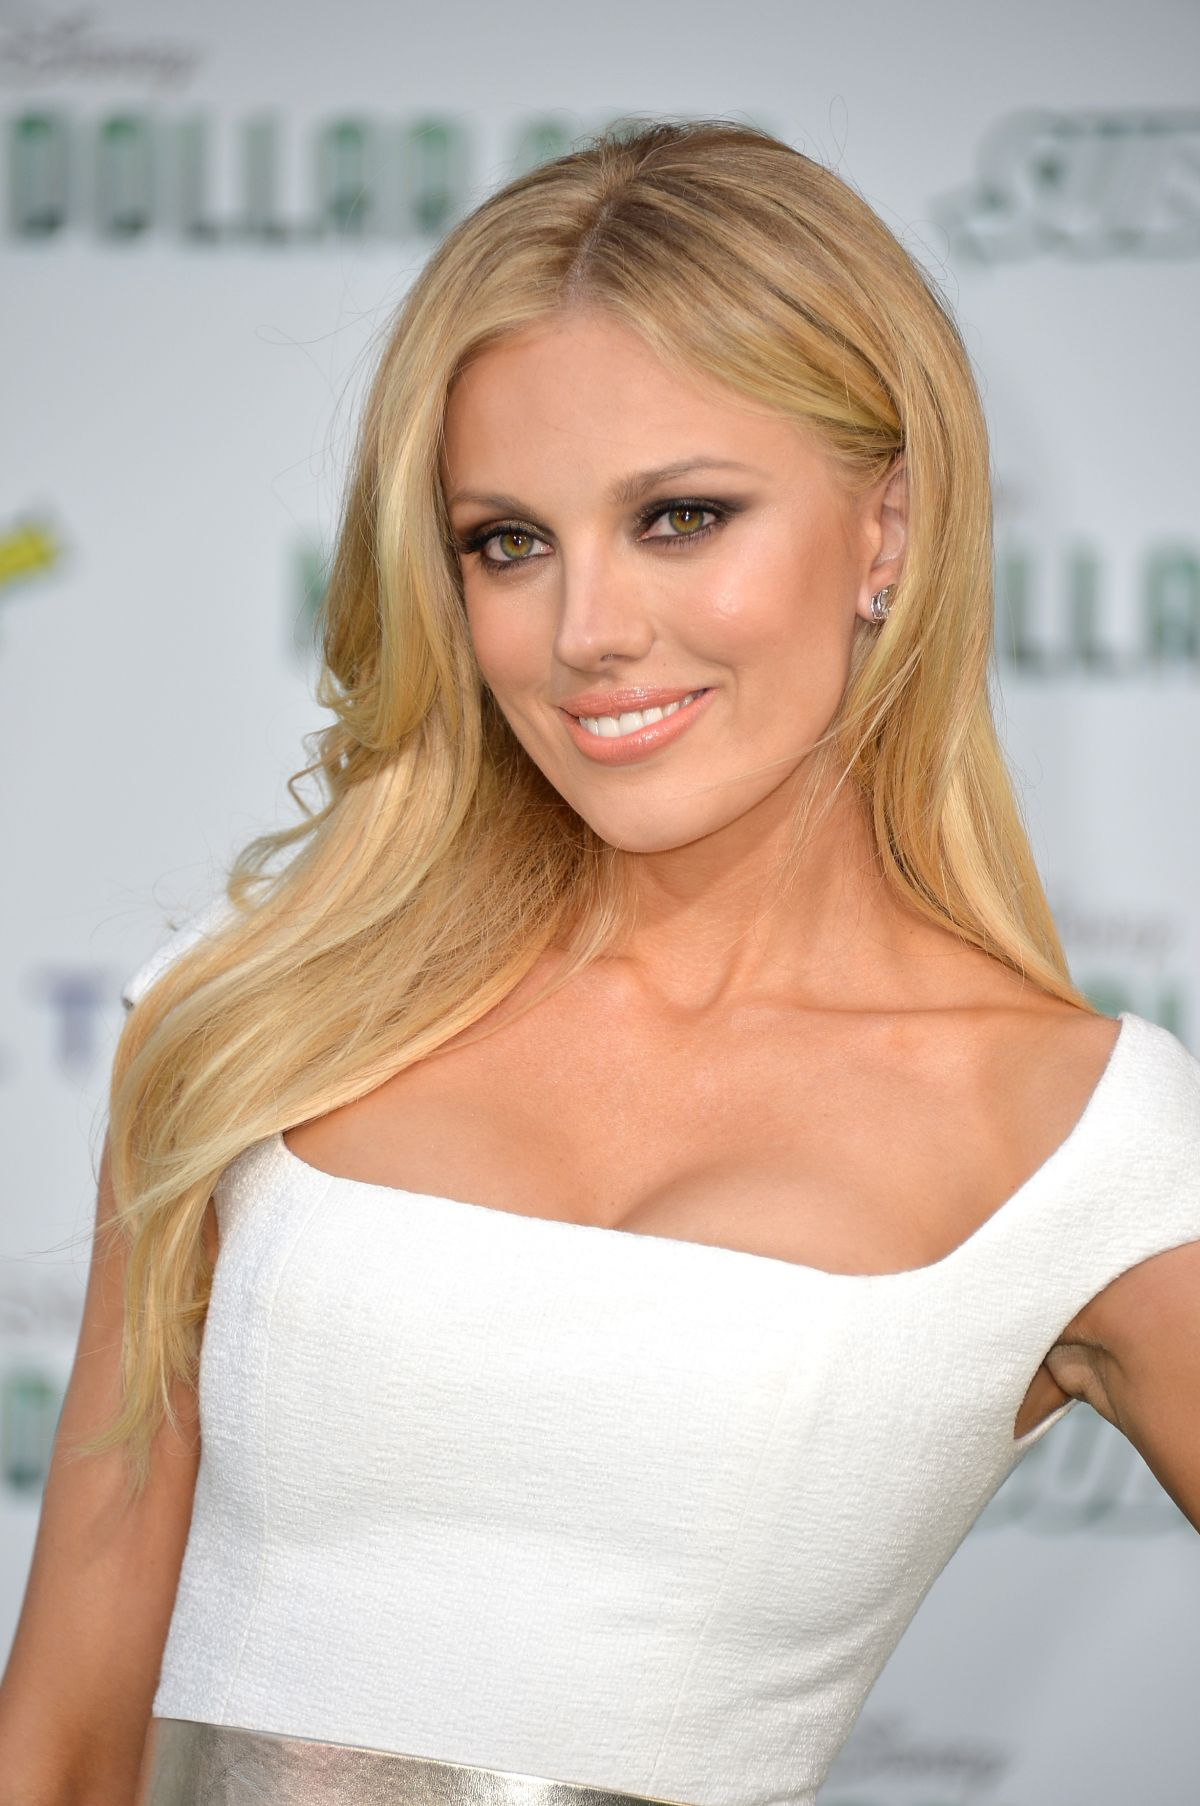 bar paly facebookbar paly age, bar paly million dollar arm, bar paly hardees, bar paly ncis, bar paly fansite, bar paly listal, bar paly twitter, bar paly facebook, bar paly net worth, bar paly husband name, bar paly 2015, bar paly married